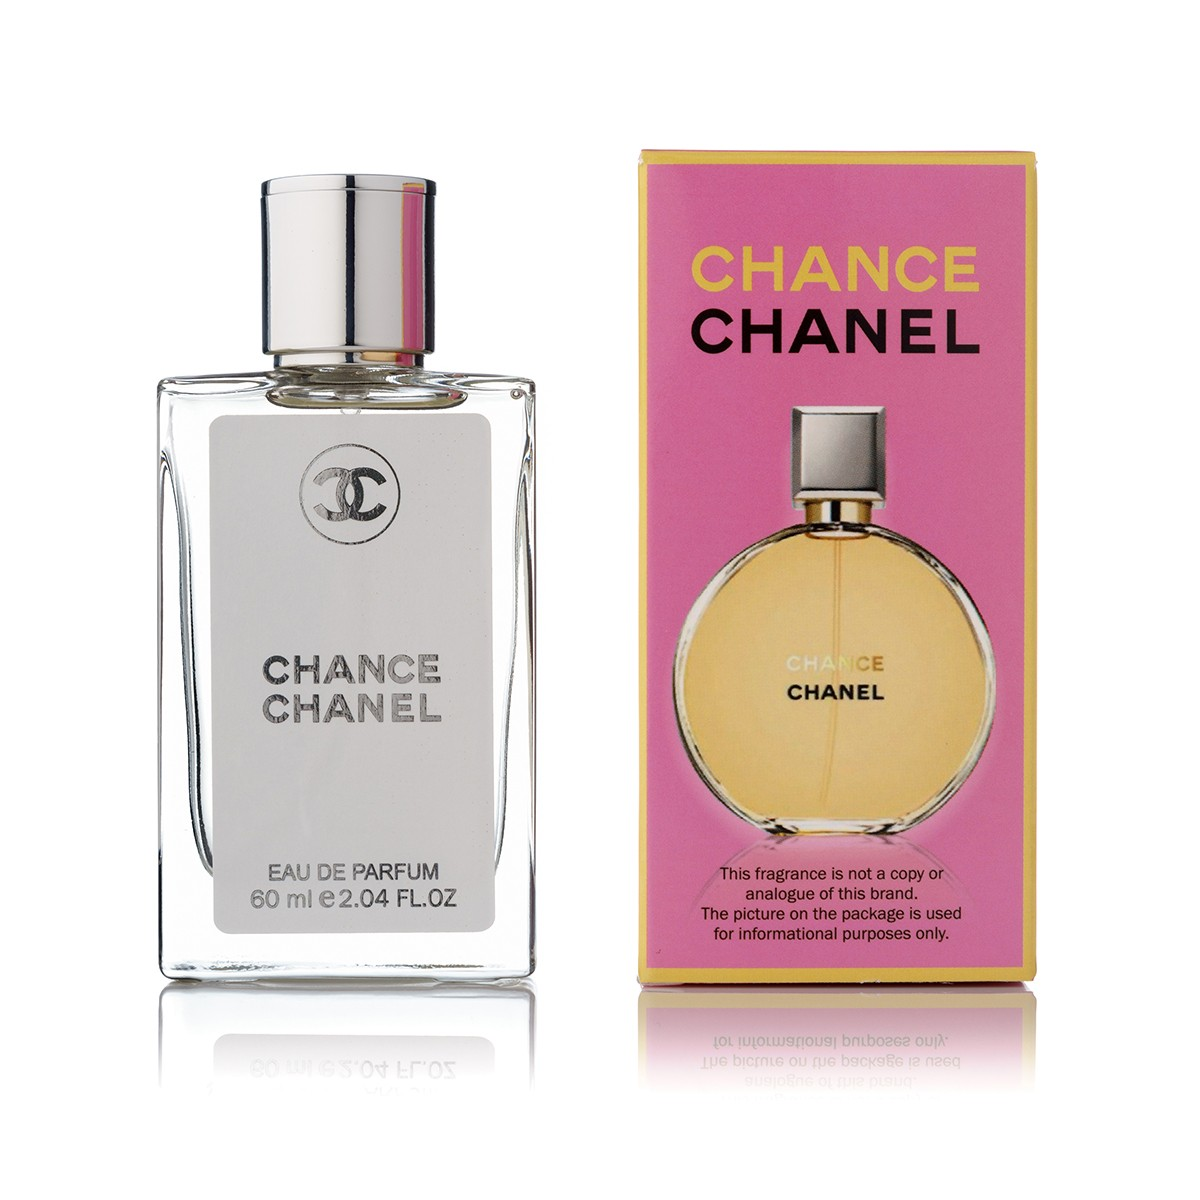 Chanel Chance edp 60 ml tester color box